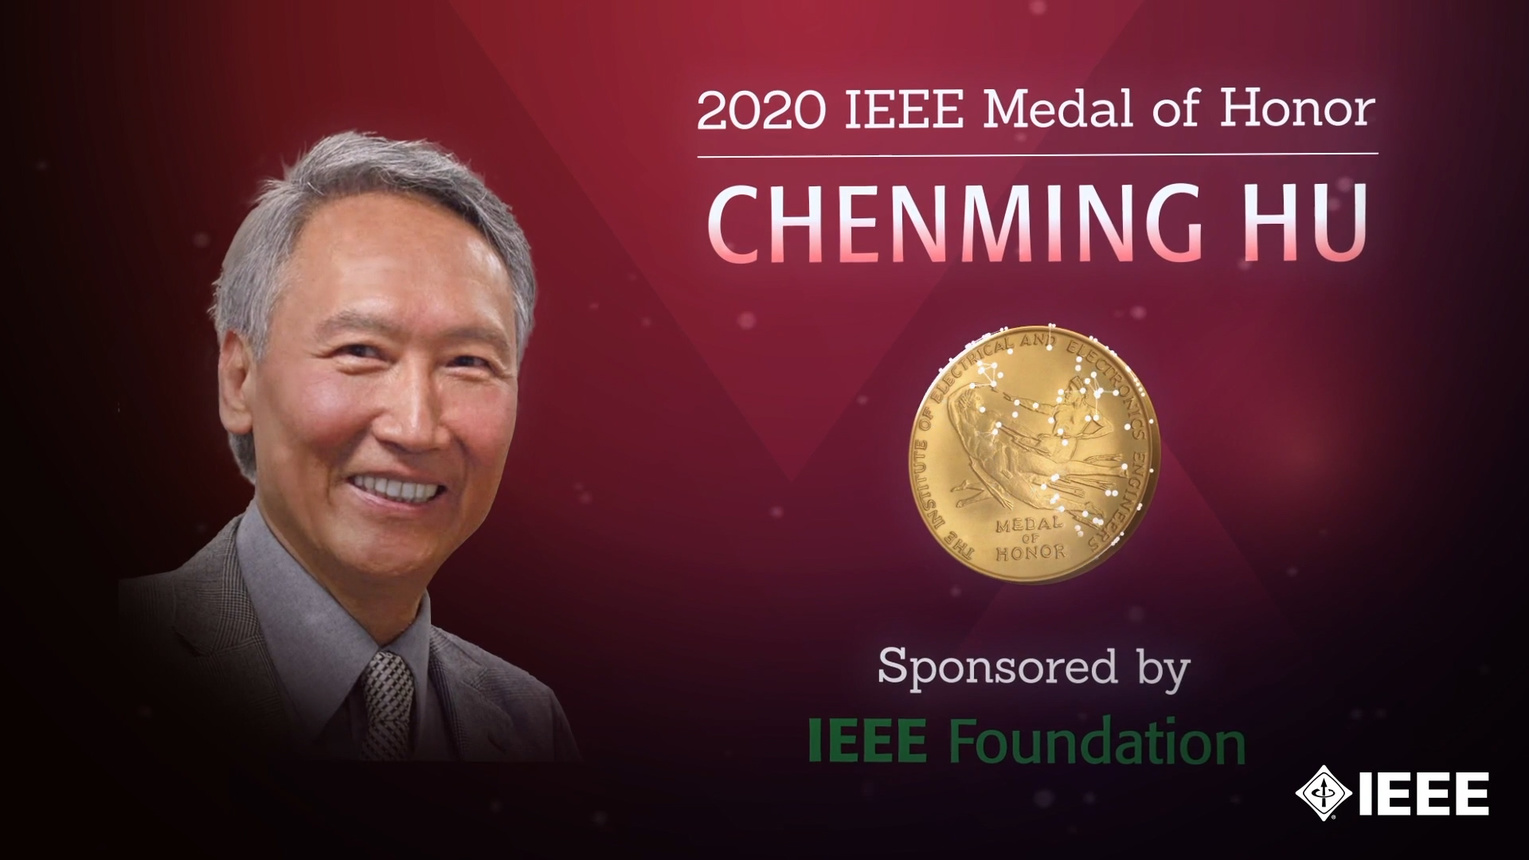 Honors 2020: Chenming Hu Wins the IEEE Medal of Honor